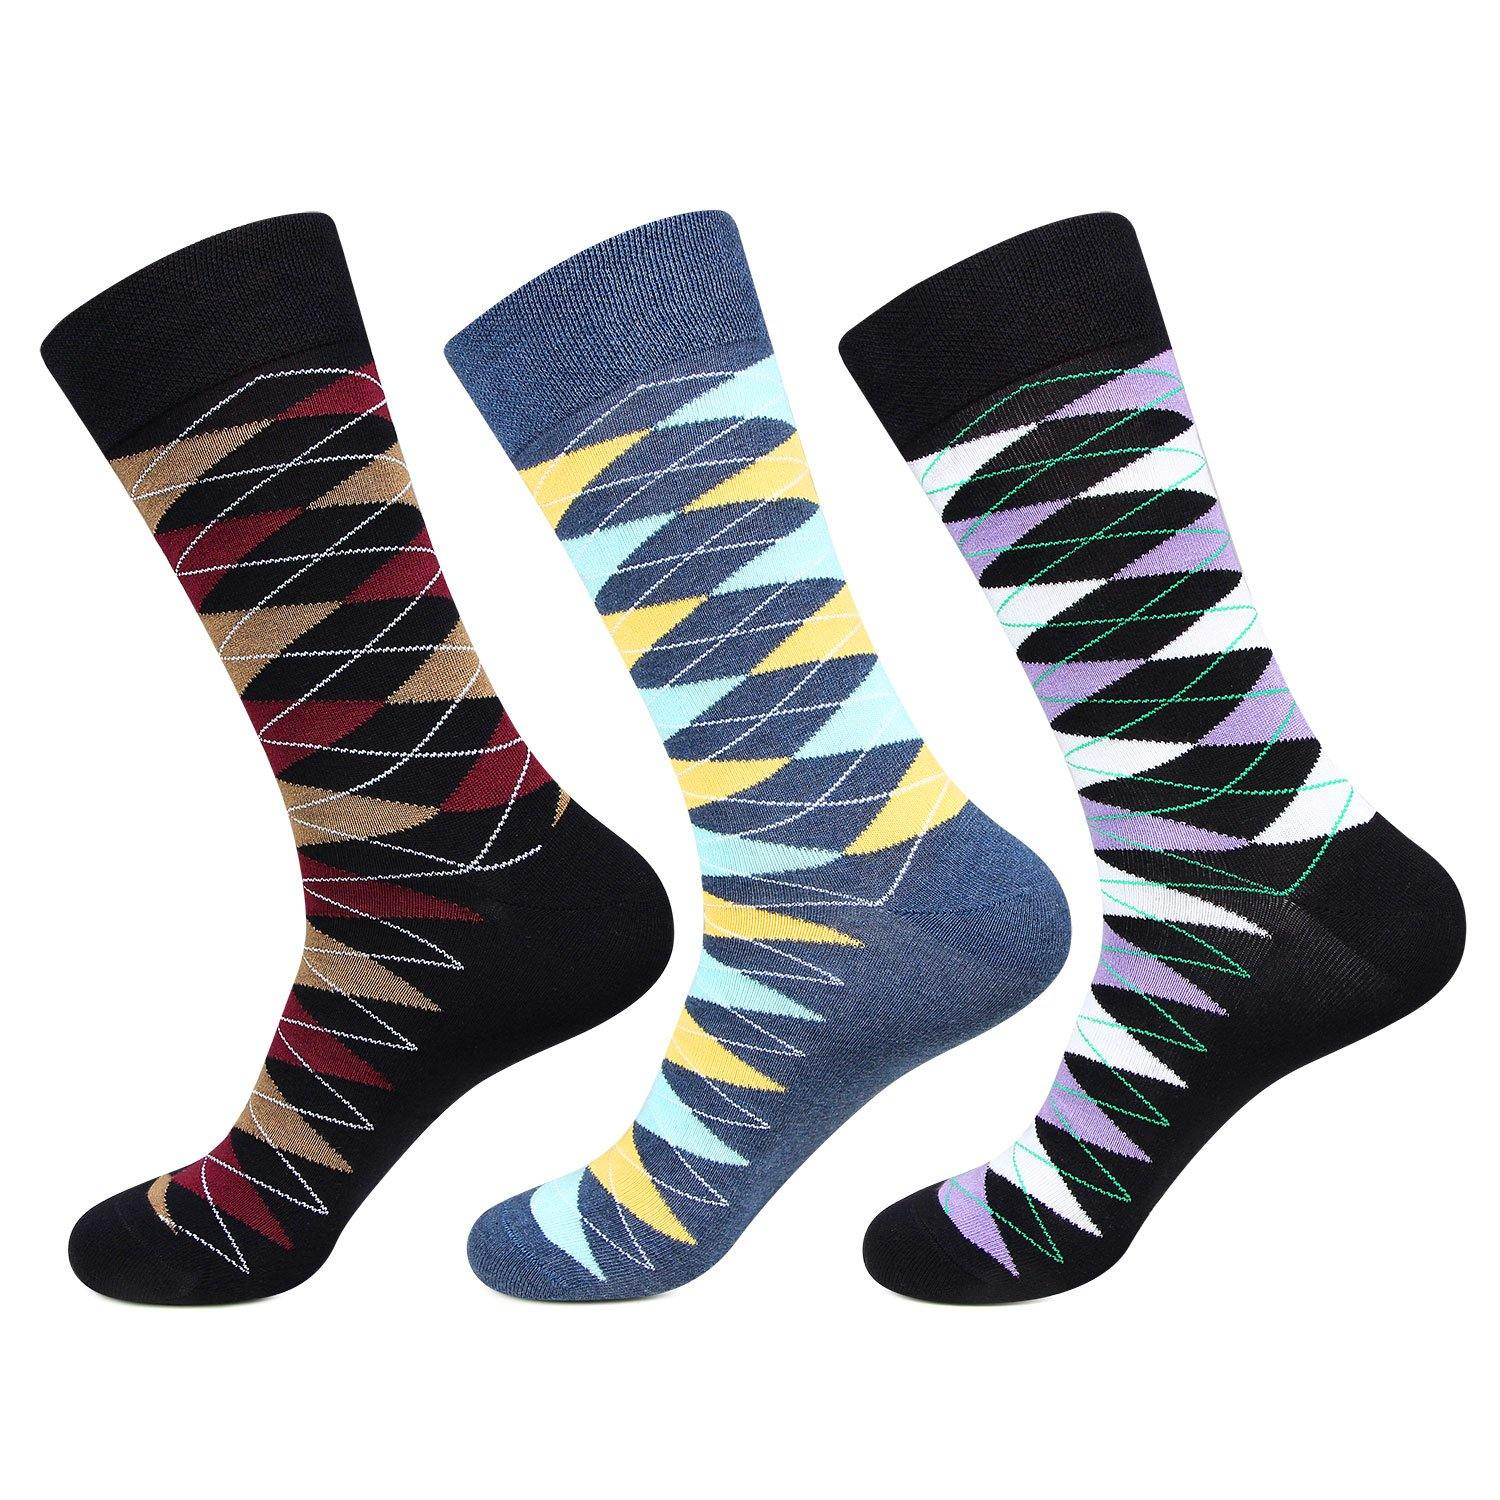 Hush Puppies Men's Multicolored Crew Socks - Pack of 3